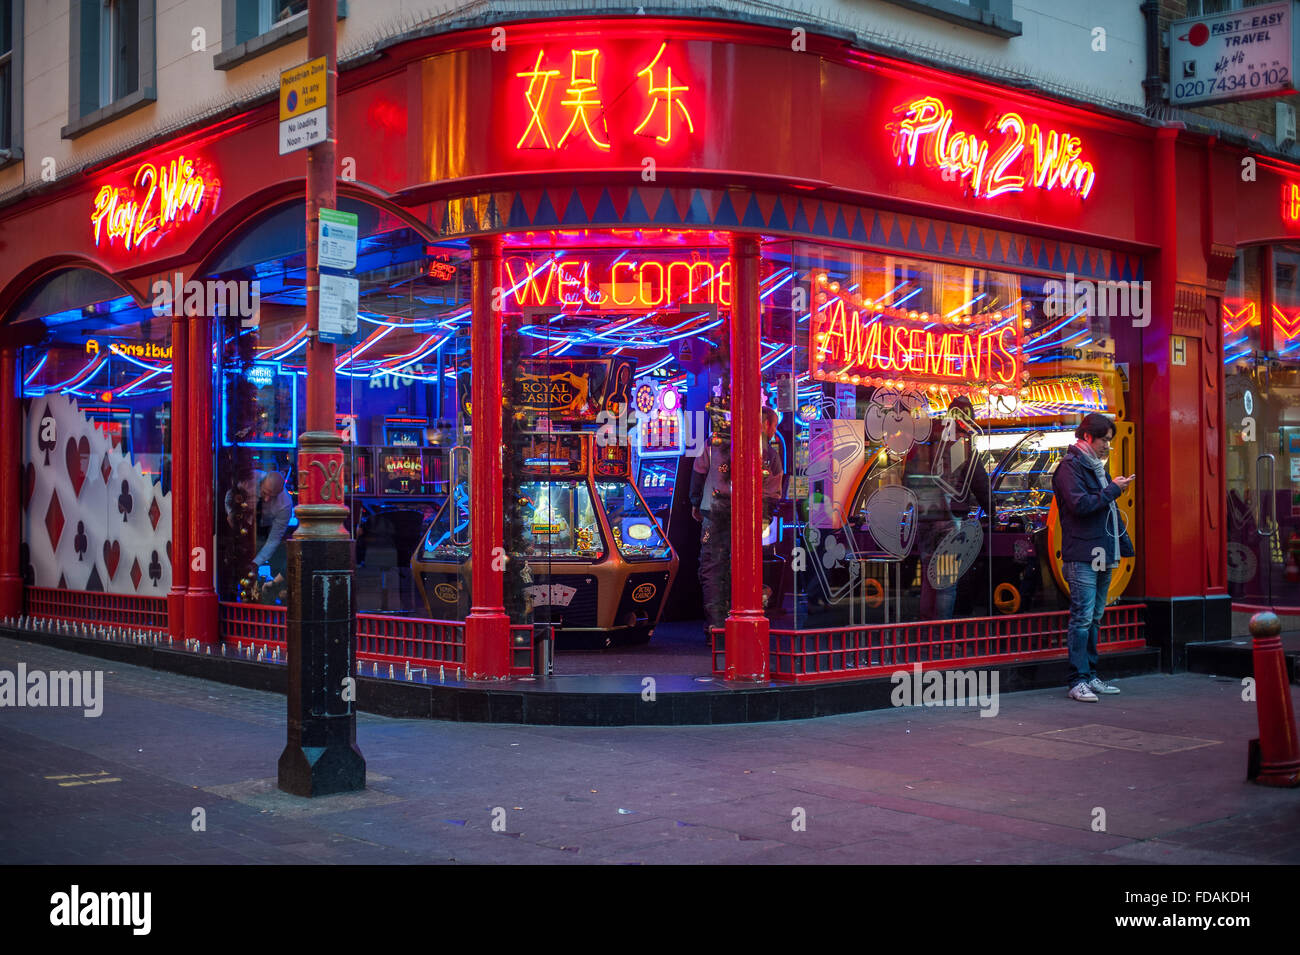 Neon Lights at Arcade in Chinatown, London - Stock Image